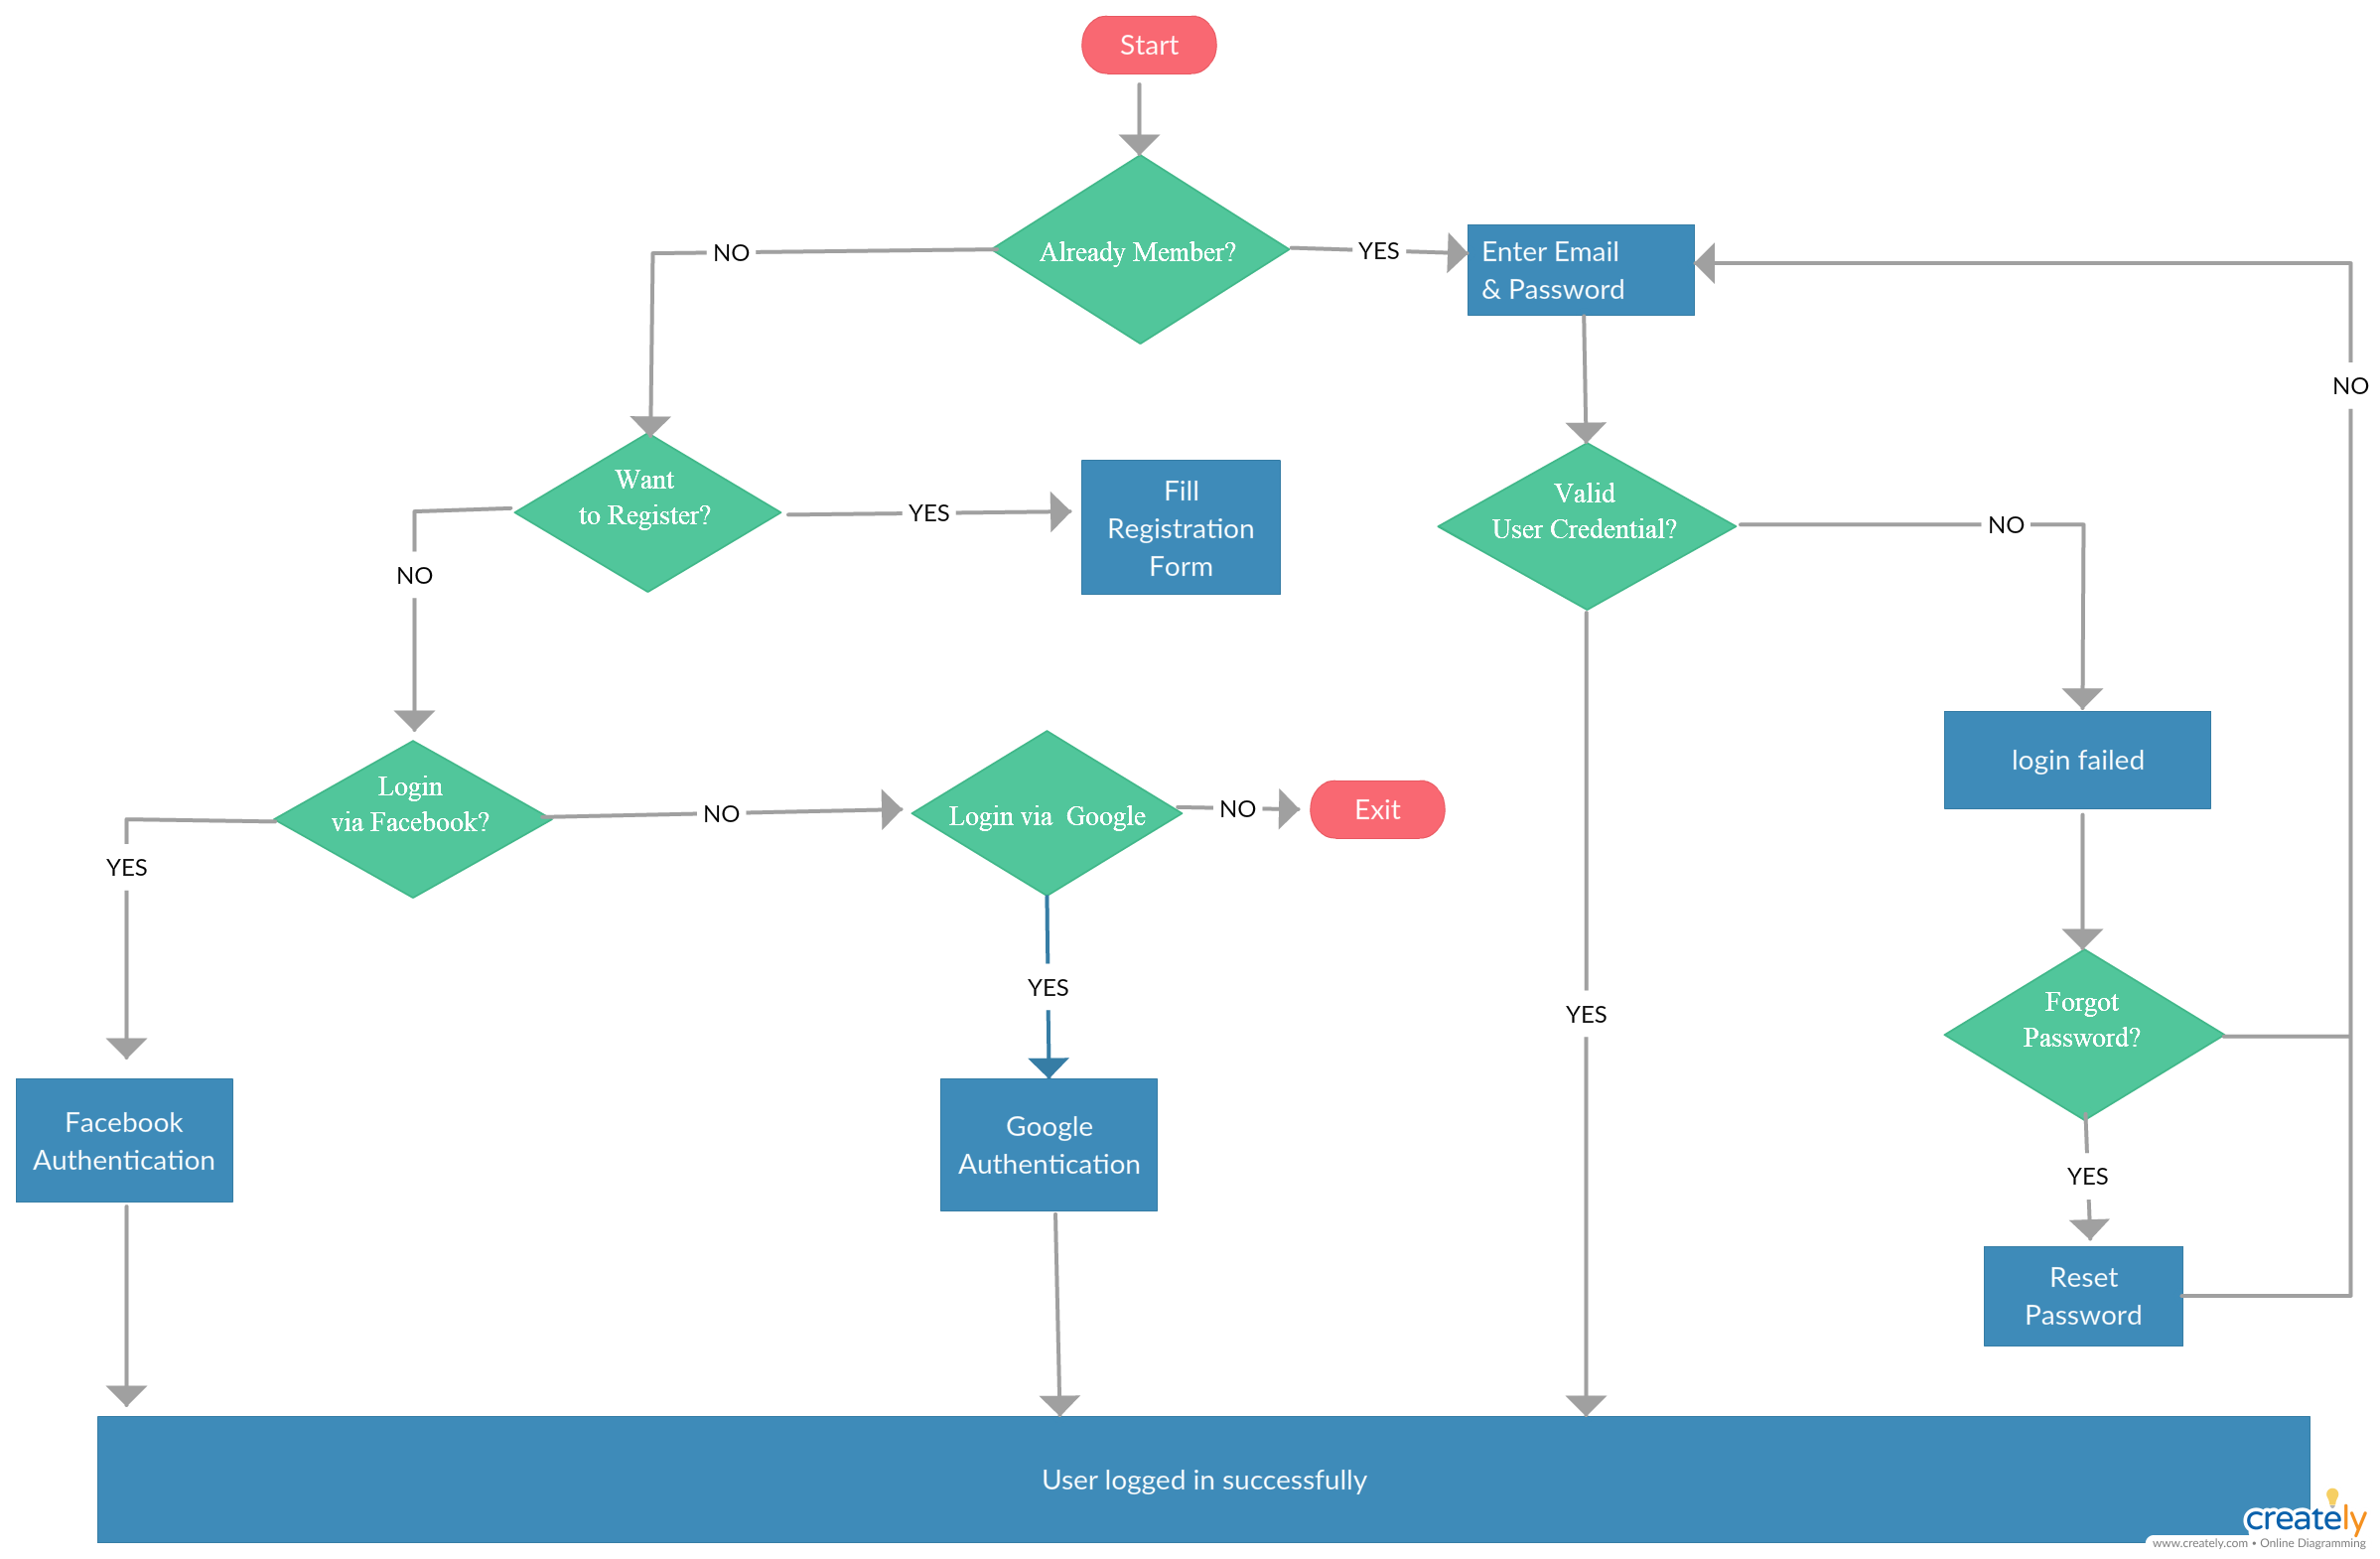 medium resolution of user registration process flow diagram user registration process flow diagram is how a user will do signup or log in using facebook google or email to